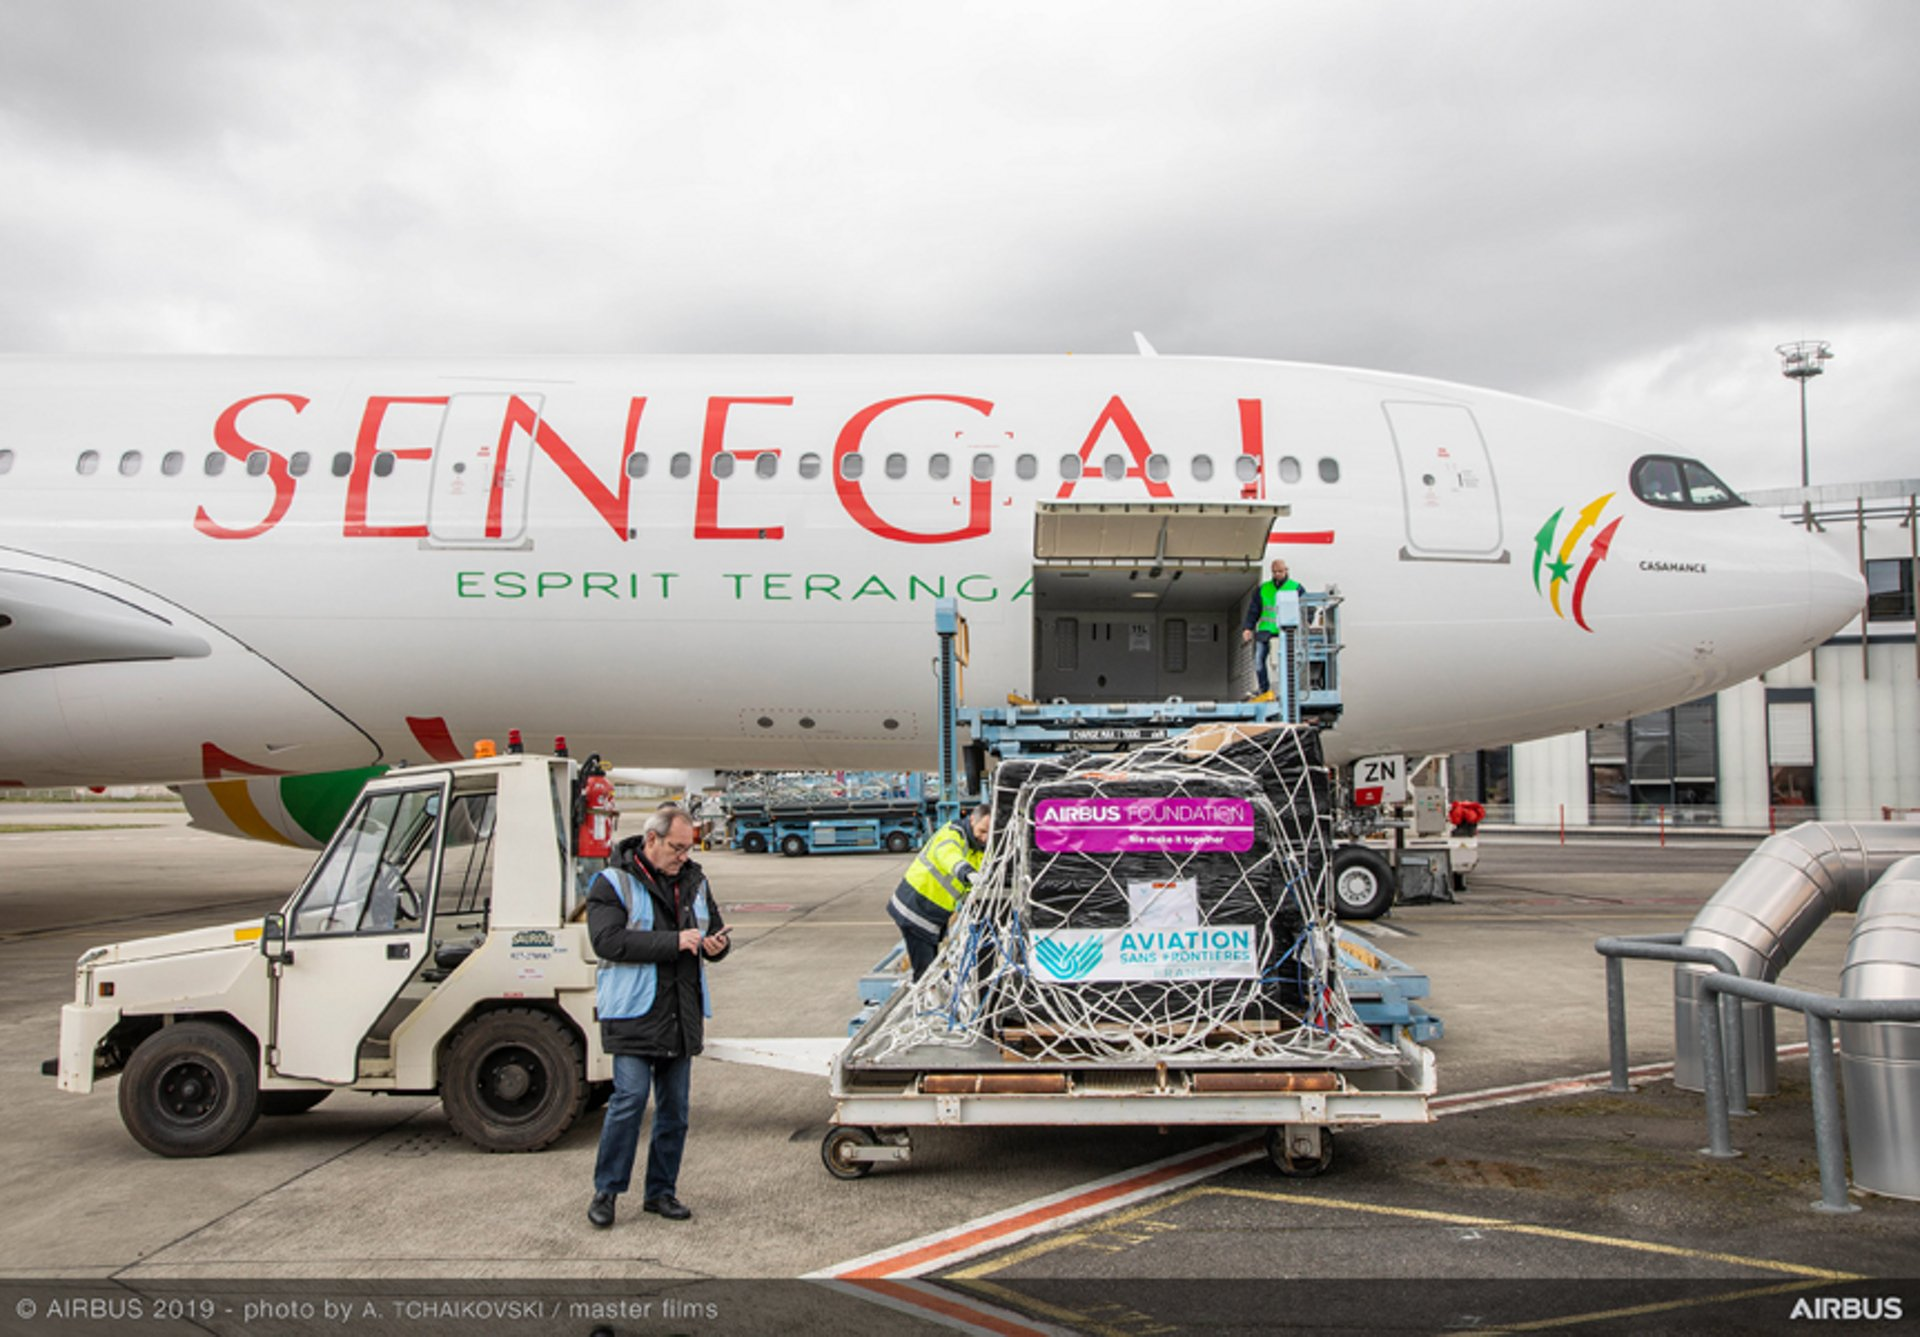 Humanitarian action by Airbus Foundation with Air Senegal